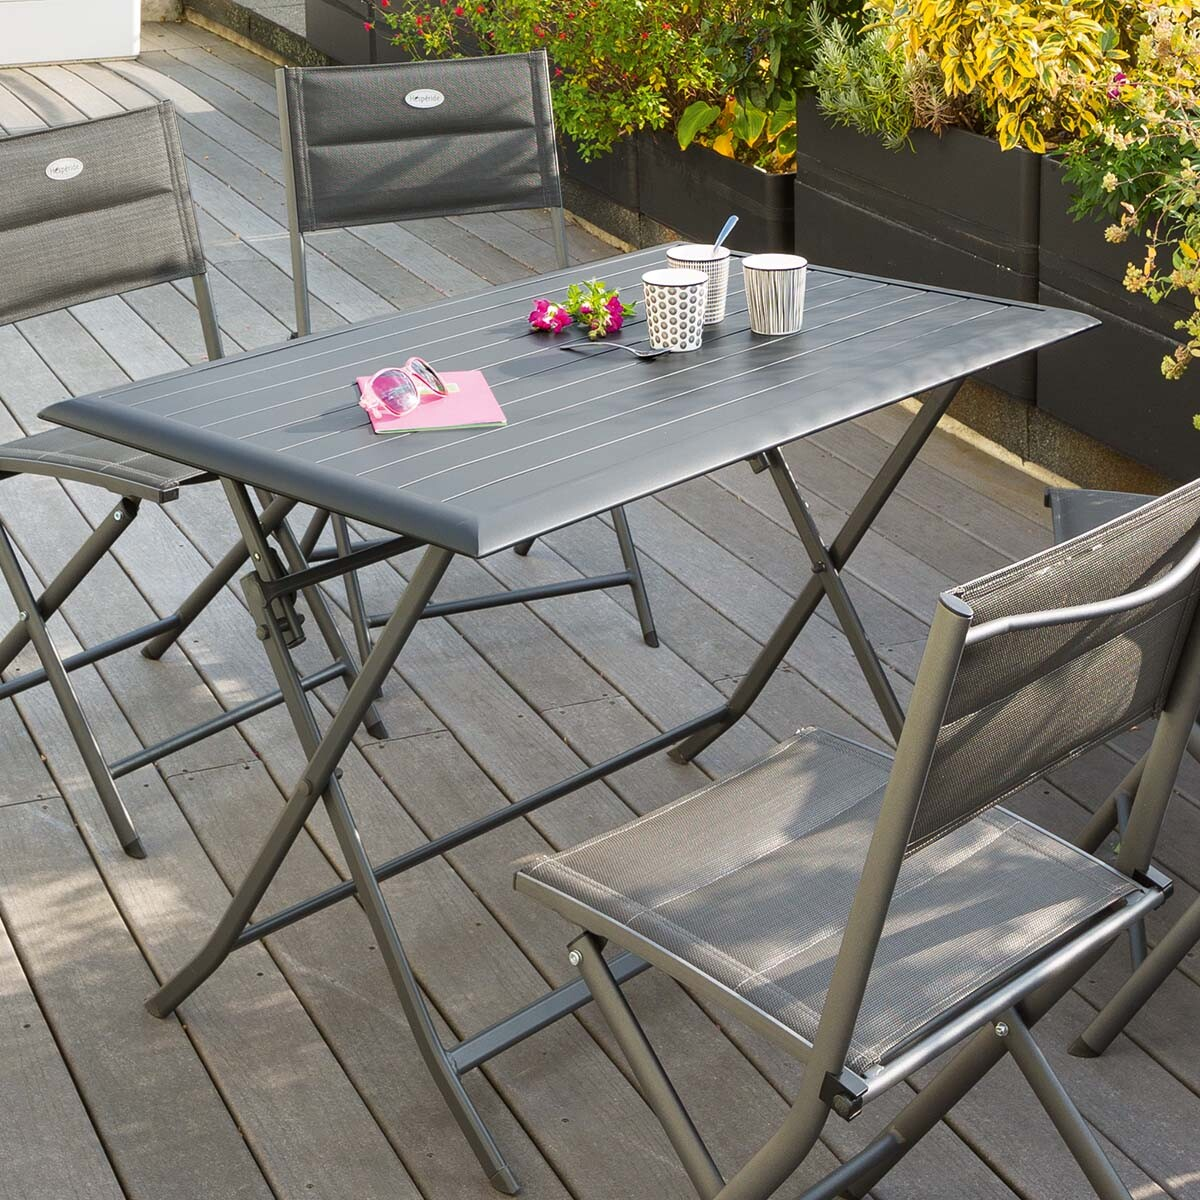 table balcon awesome balcony foldable table exterior wood. Black Bedroom Furniture Sets. Home Design Ideas